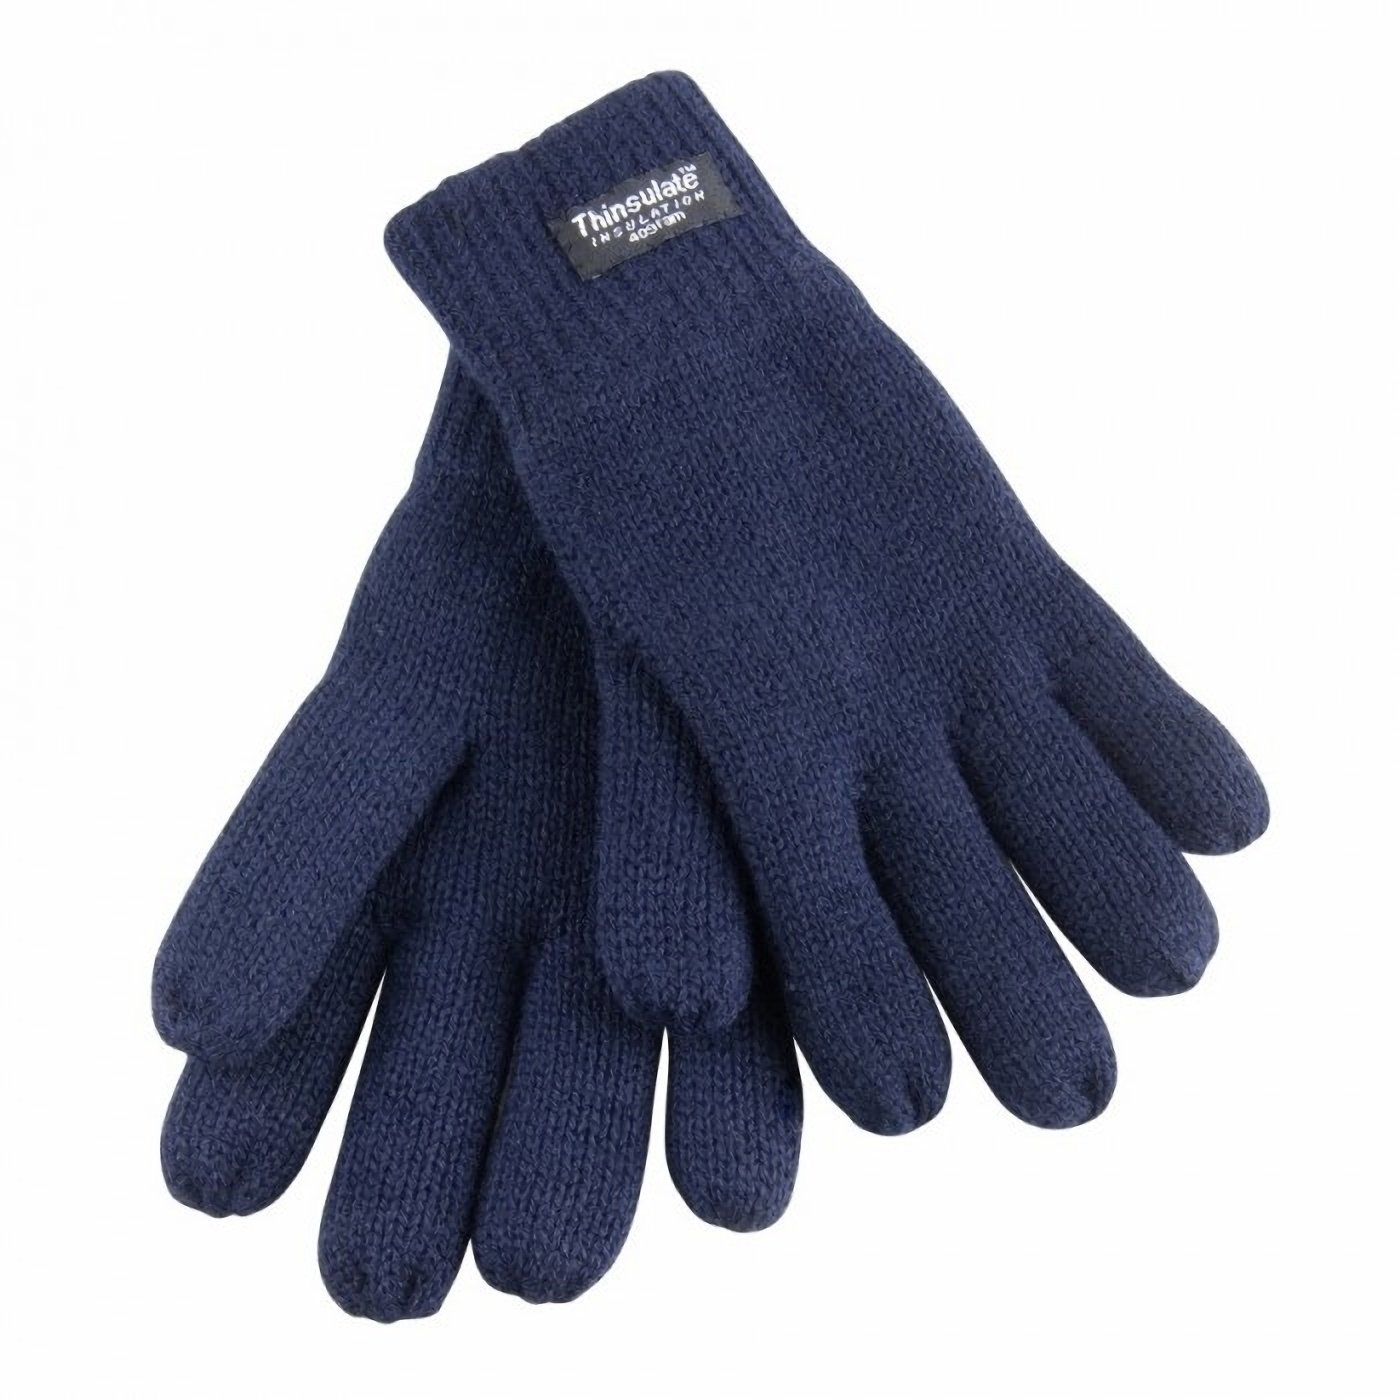 Result Junior Kids/Childrens Lined Thinsulate Thermal Gloves (3M 40g) UTBC878_1